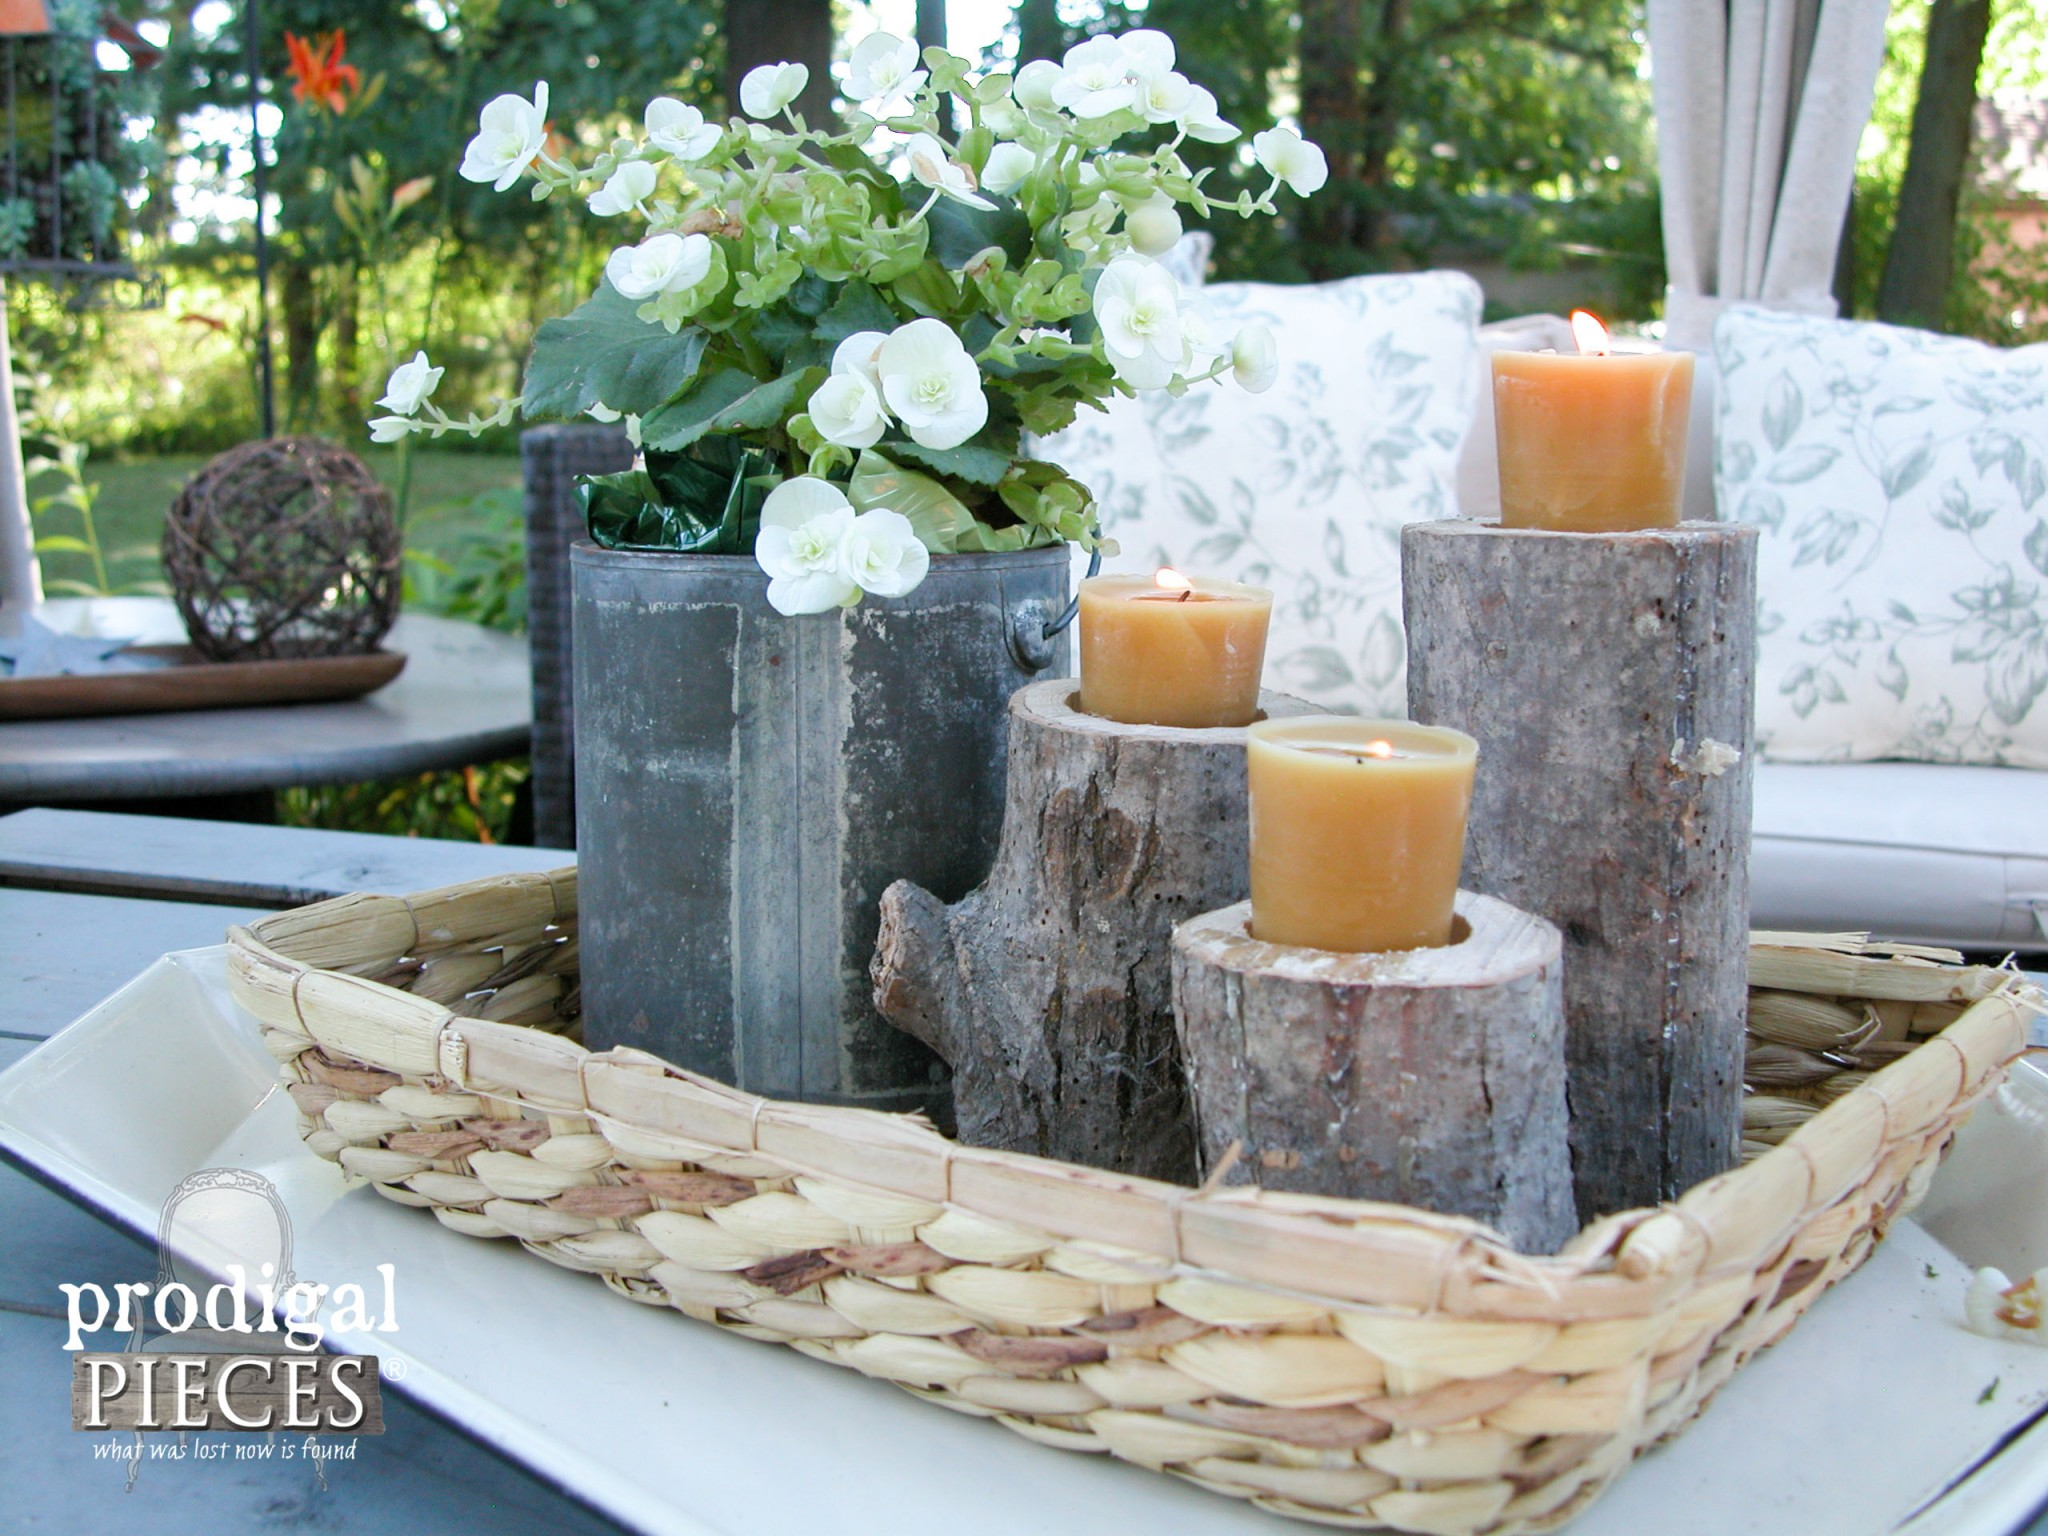 Rustic DIY Log Candlesticks with Natural Beeswax Candles by Prodigal Pieces | www.prodigalpieces.com